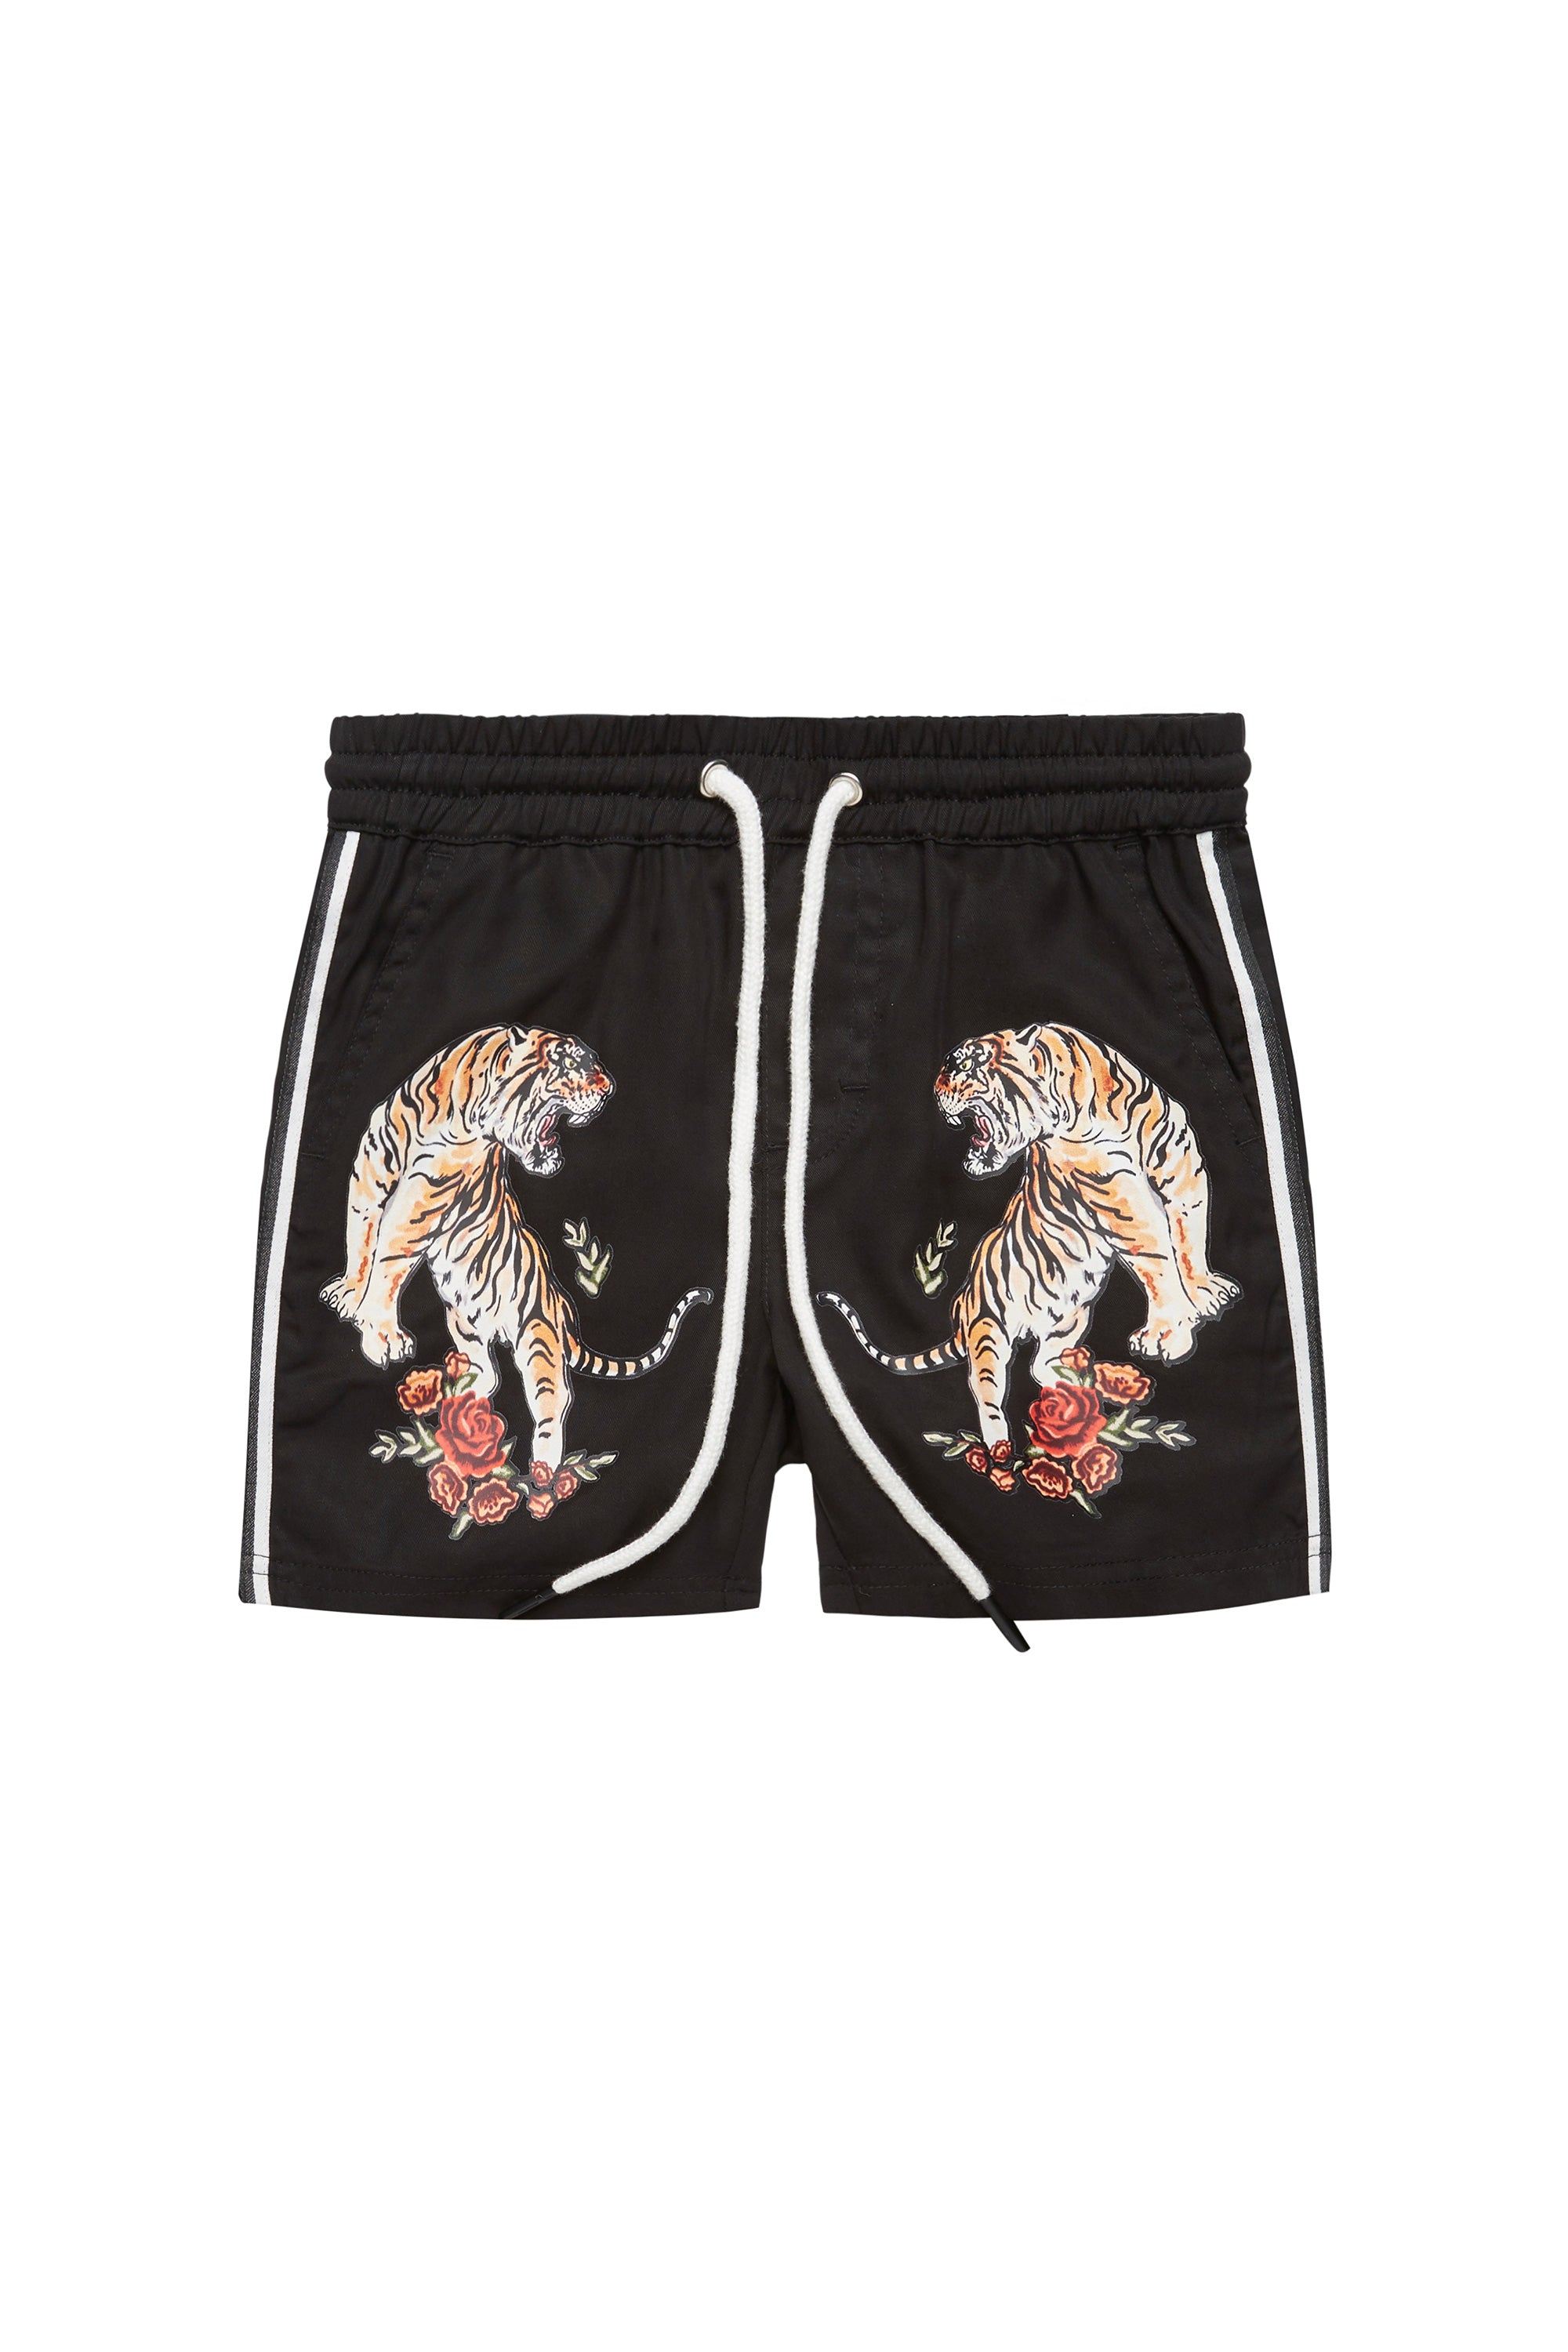 Black Tiger Shorts